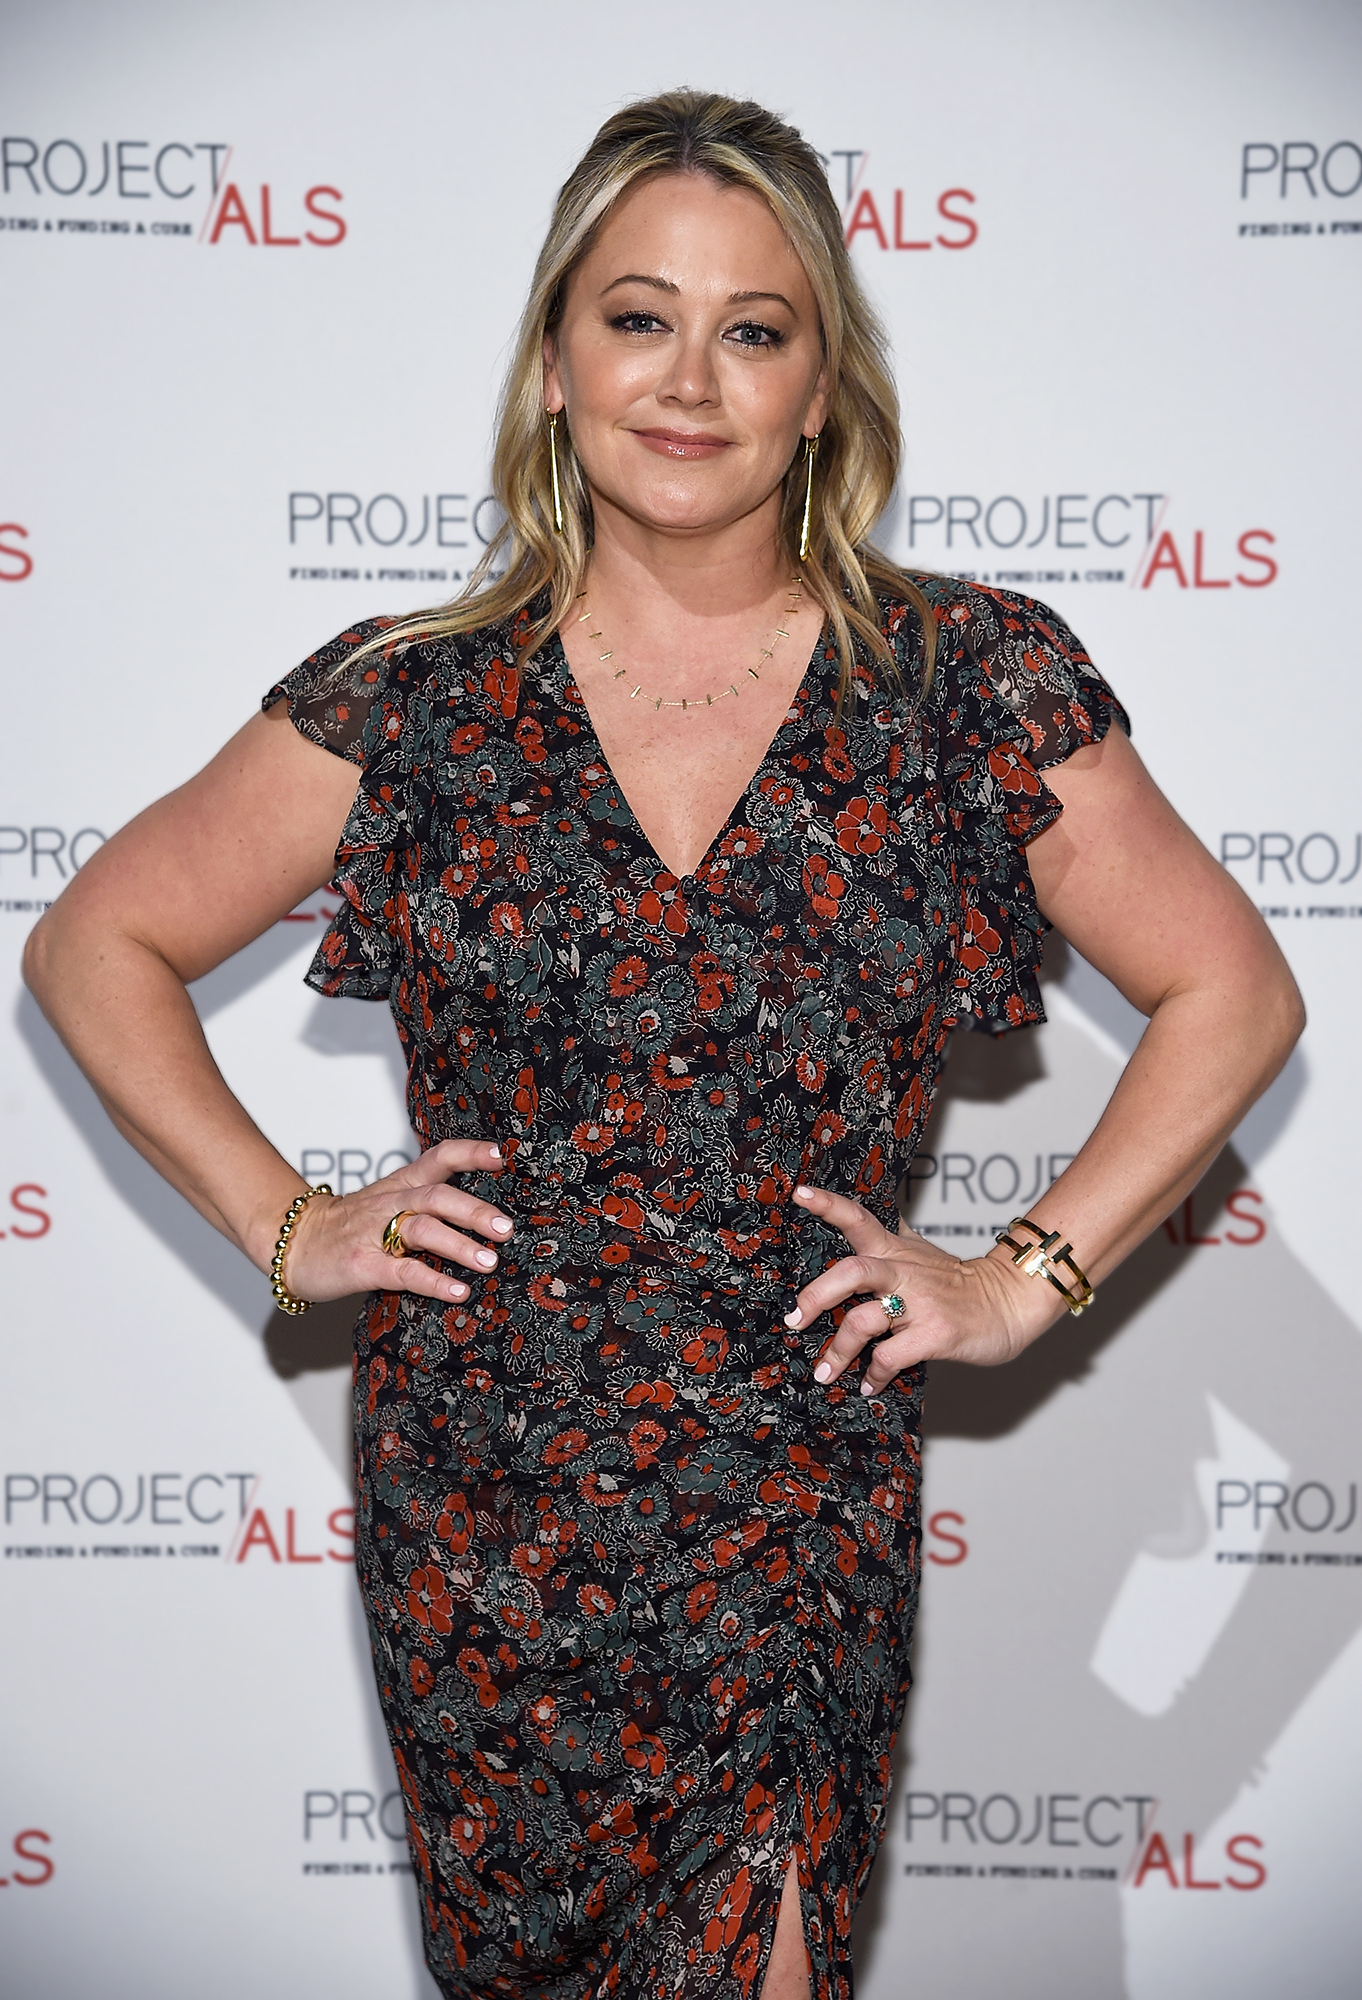 Christine Taylor Dodges Questions About Reconciling With Ben Stiller: 'We're Together All the Time' - Christine Taylor attends The 2018 Project ALS Gala at Cipriani 42nd Street on October 24, 2018 in New York City.